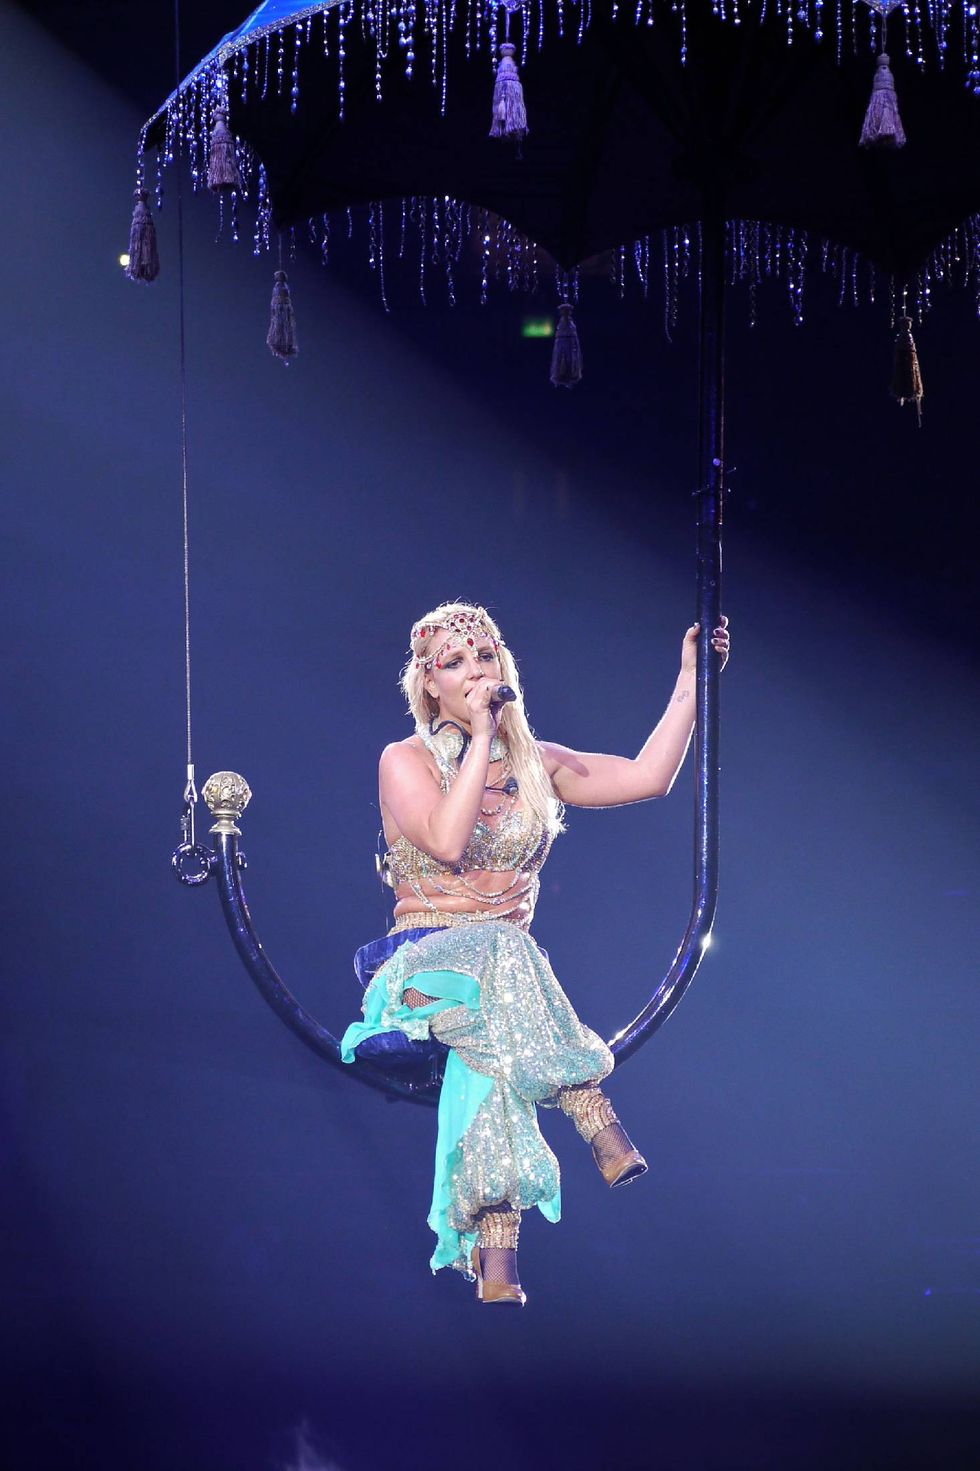 britney-spears-performs-at-o2-arena-in-london-05